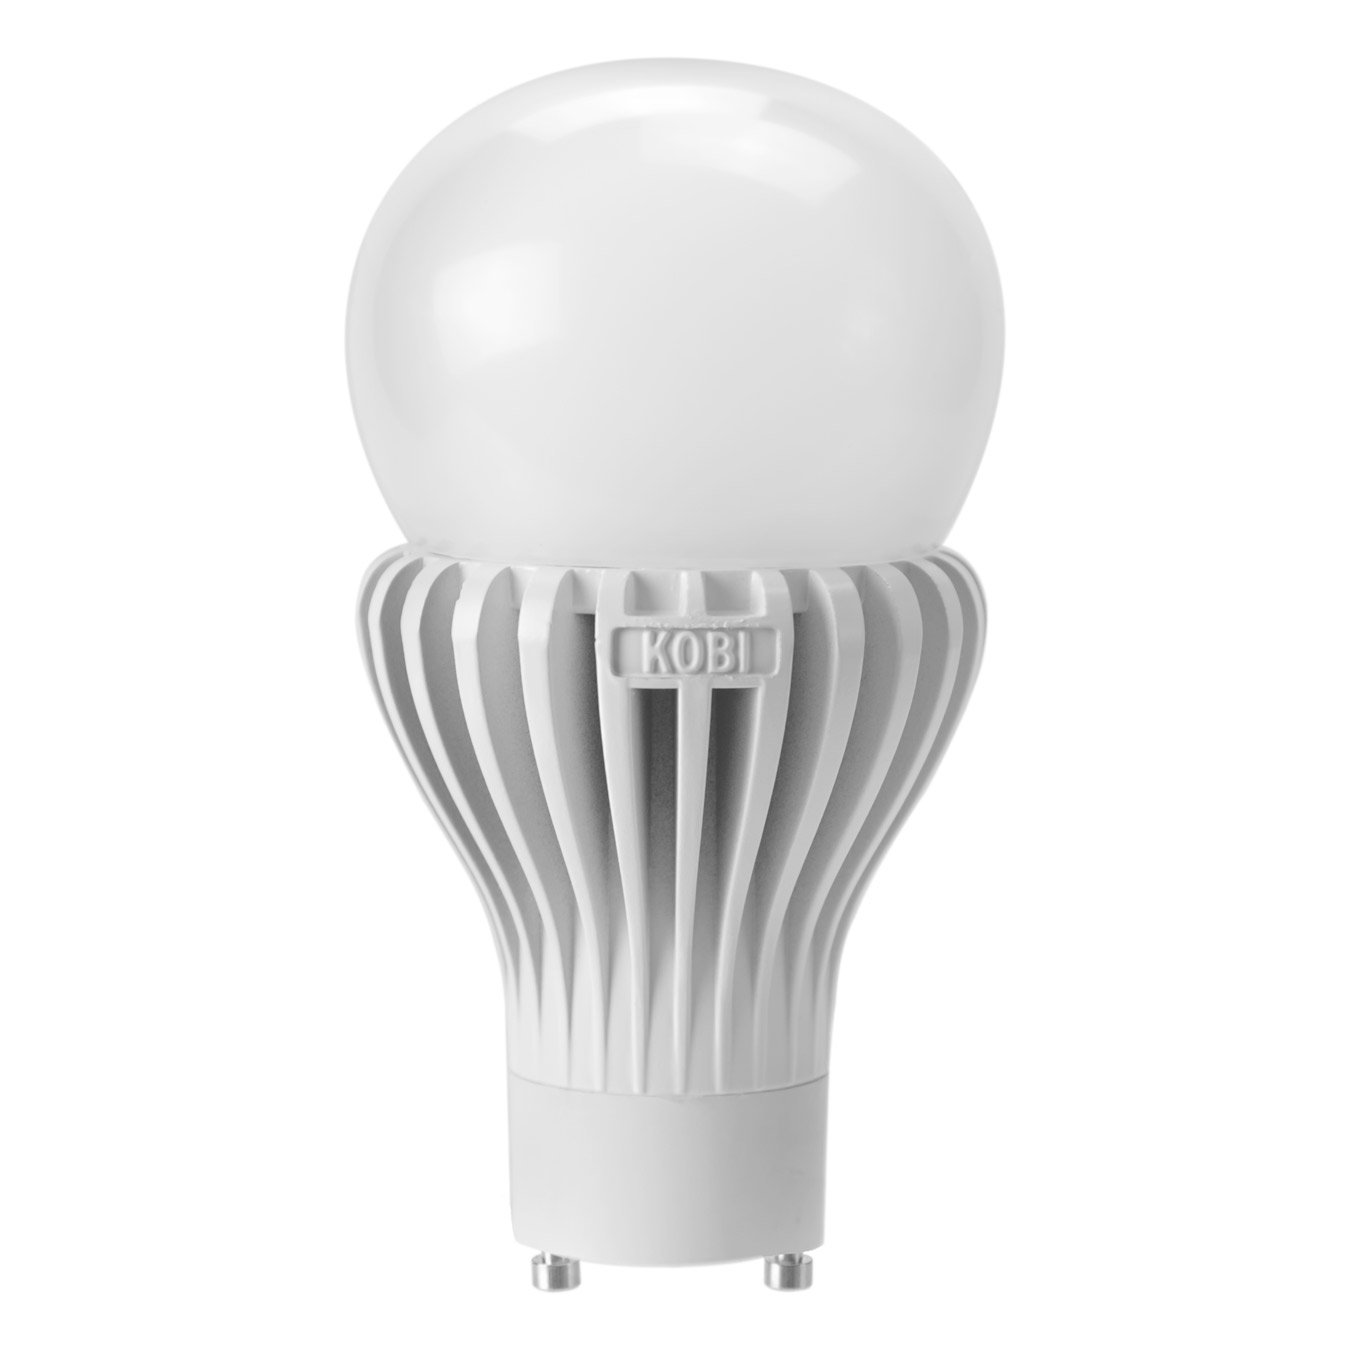 Kobi Electric K2N4 18W Omni Directional A21 LED 5000K Light Bulb ...